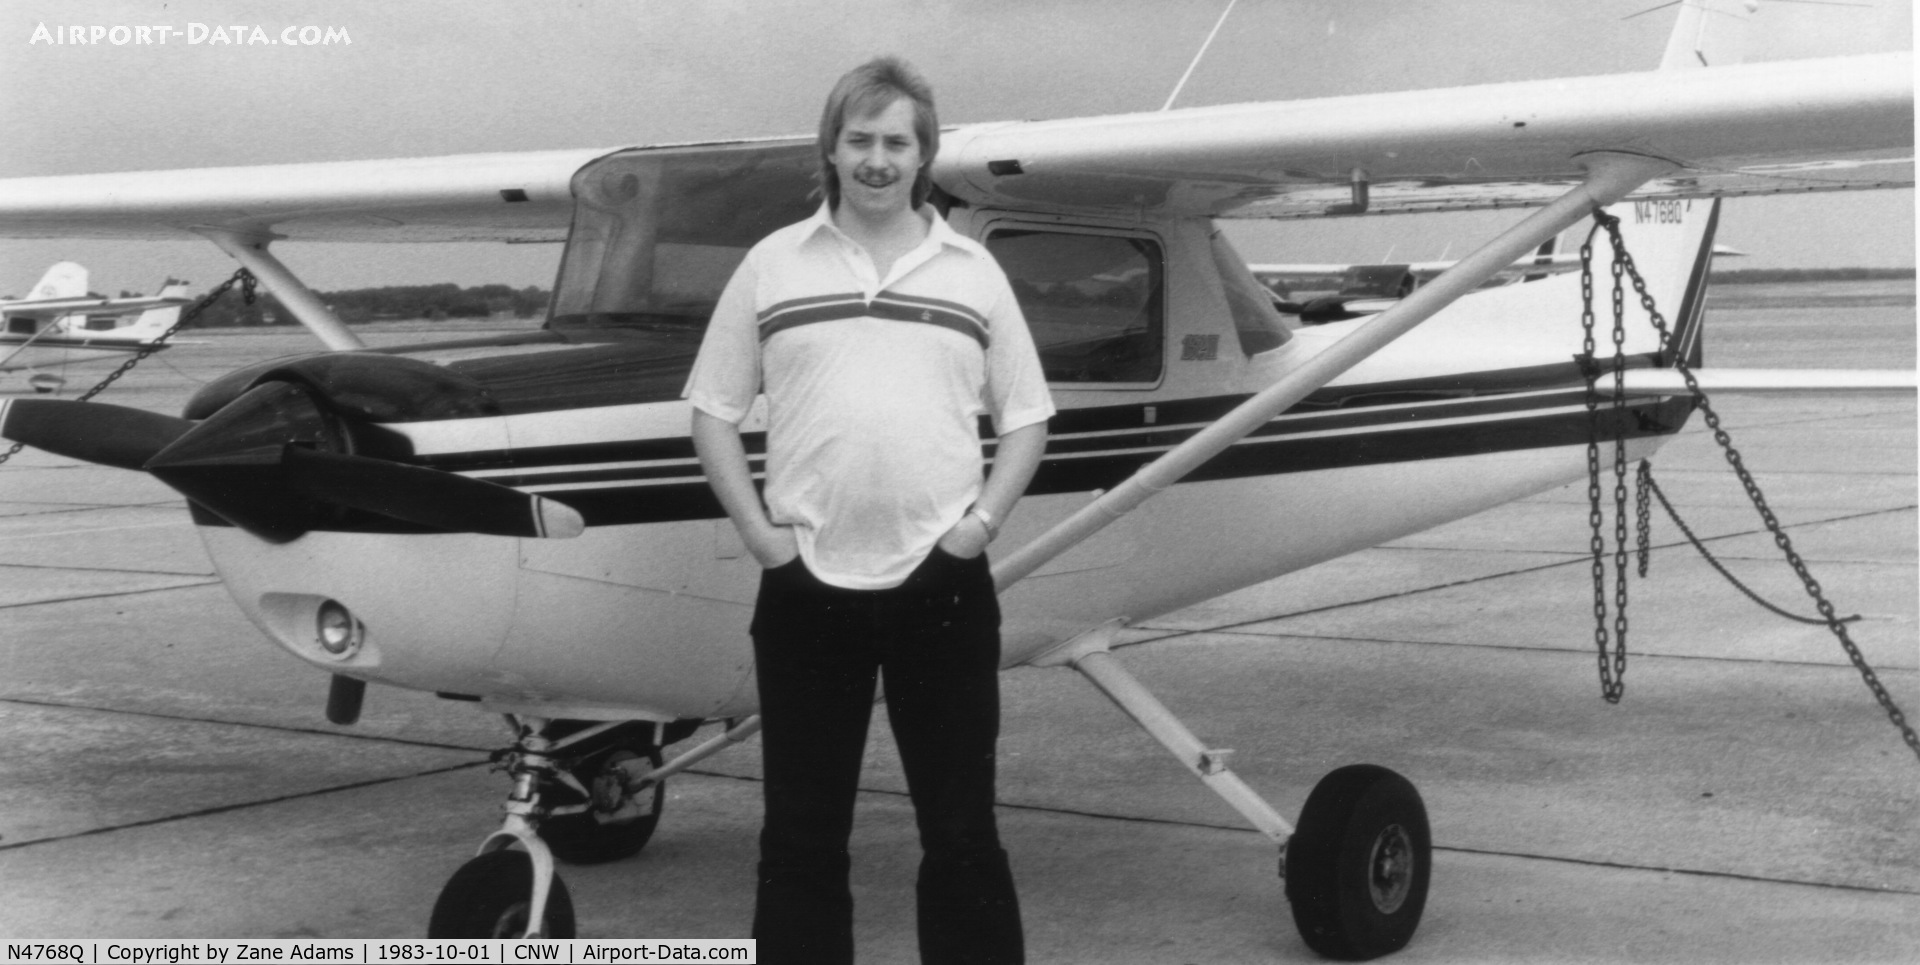 N4768Q, Cessna 152 C/N 152-85061, Me and my first solo buddy  - 4786Q @ 1983